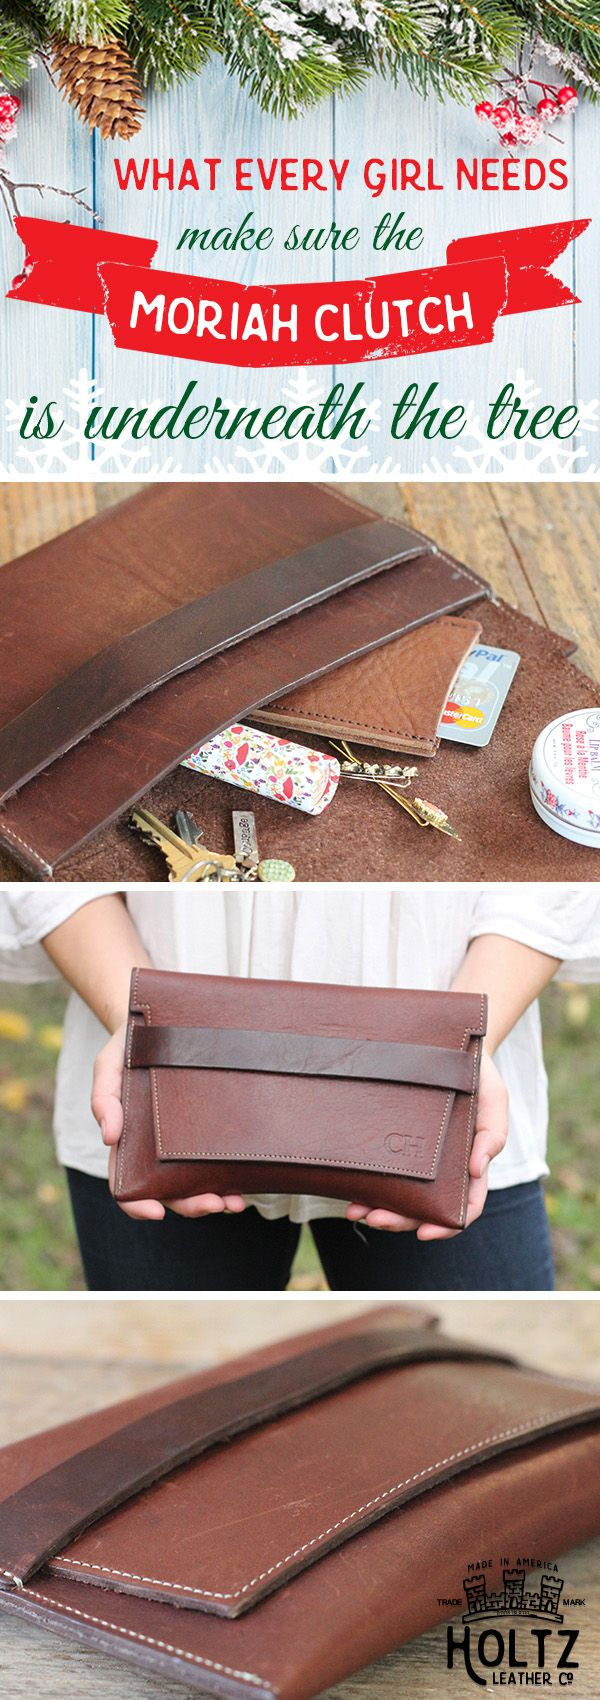 It's true that when it comes to gifts for her, it's the thought that counts, but that doesn't mean the gift itself shouldn't be one she'll love and treasure for a lifetime. Each item is handmade with the finest Full Grain Leather, from a southern tannery, to get a rustic look and feel. Plus, we'll personalize it with her name, initials, or a personal note, showing that thought and planning went into finding the perfect gift for her.